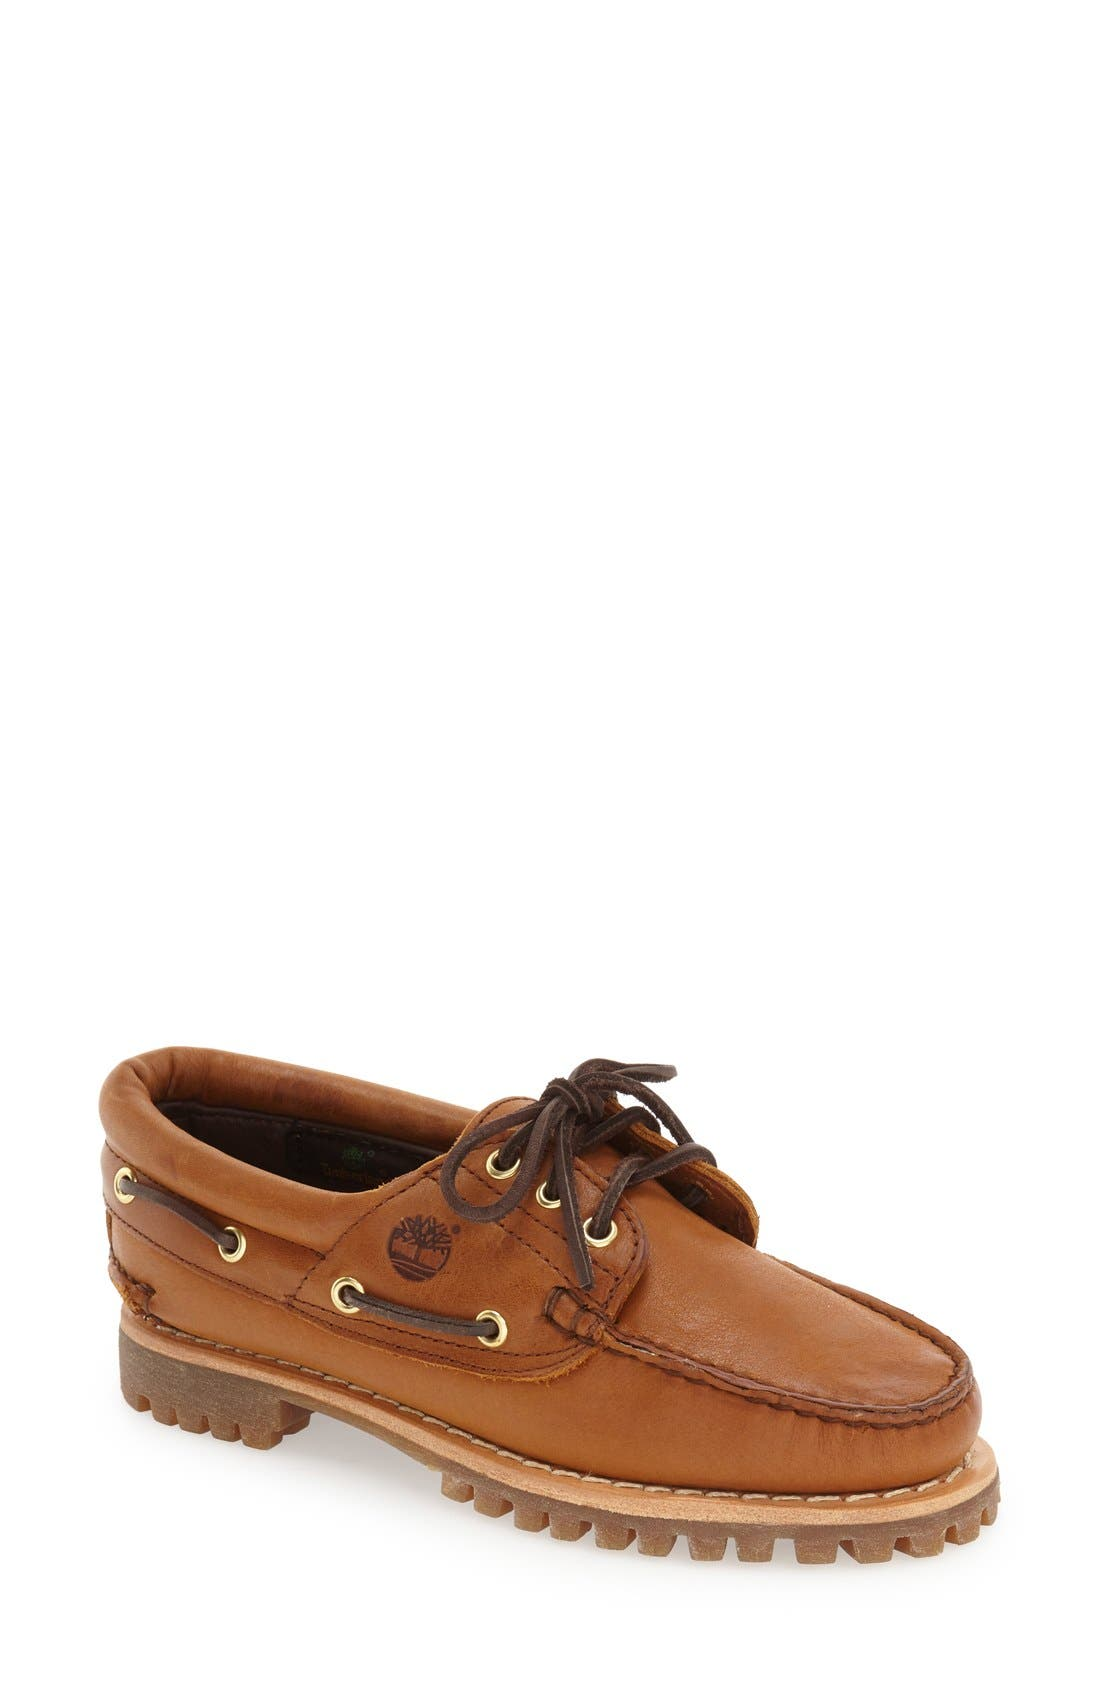 Timberland 'Noreen' Boat Shoe